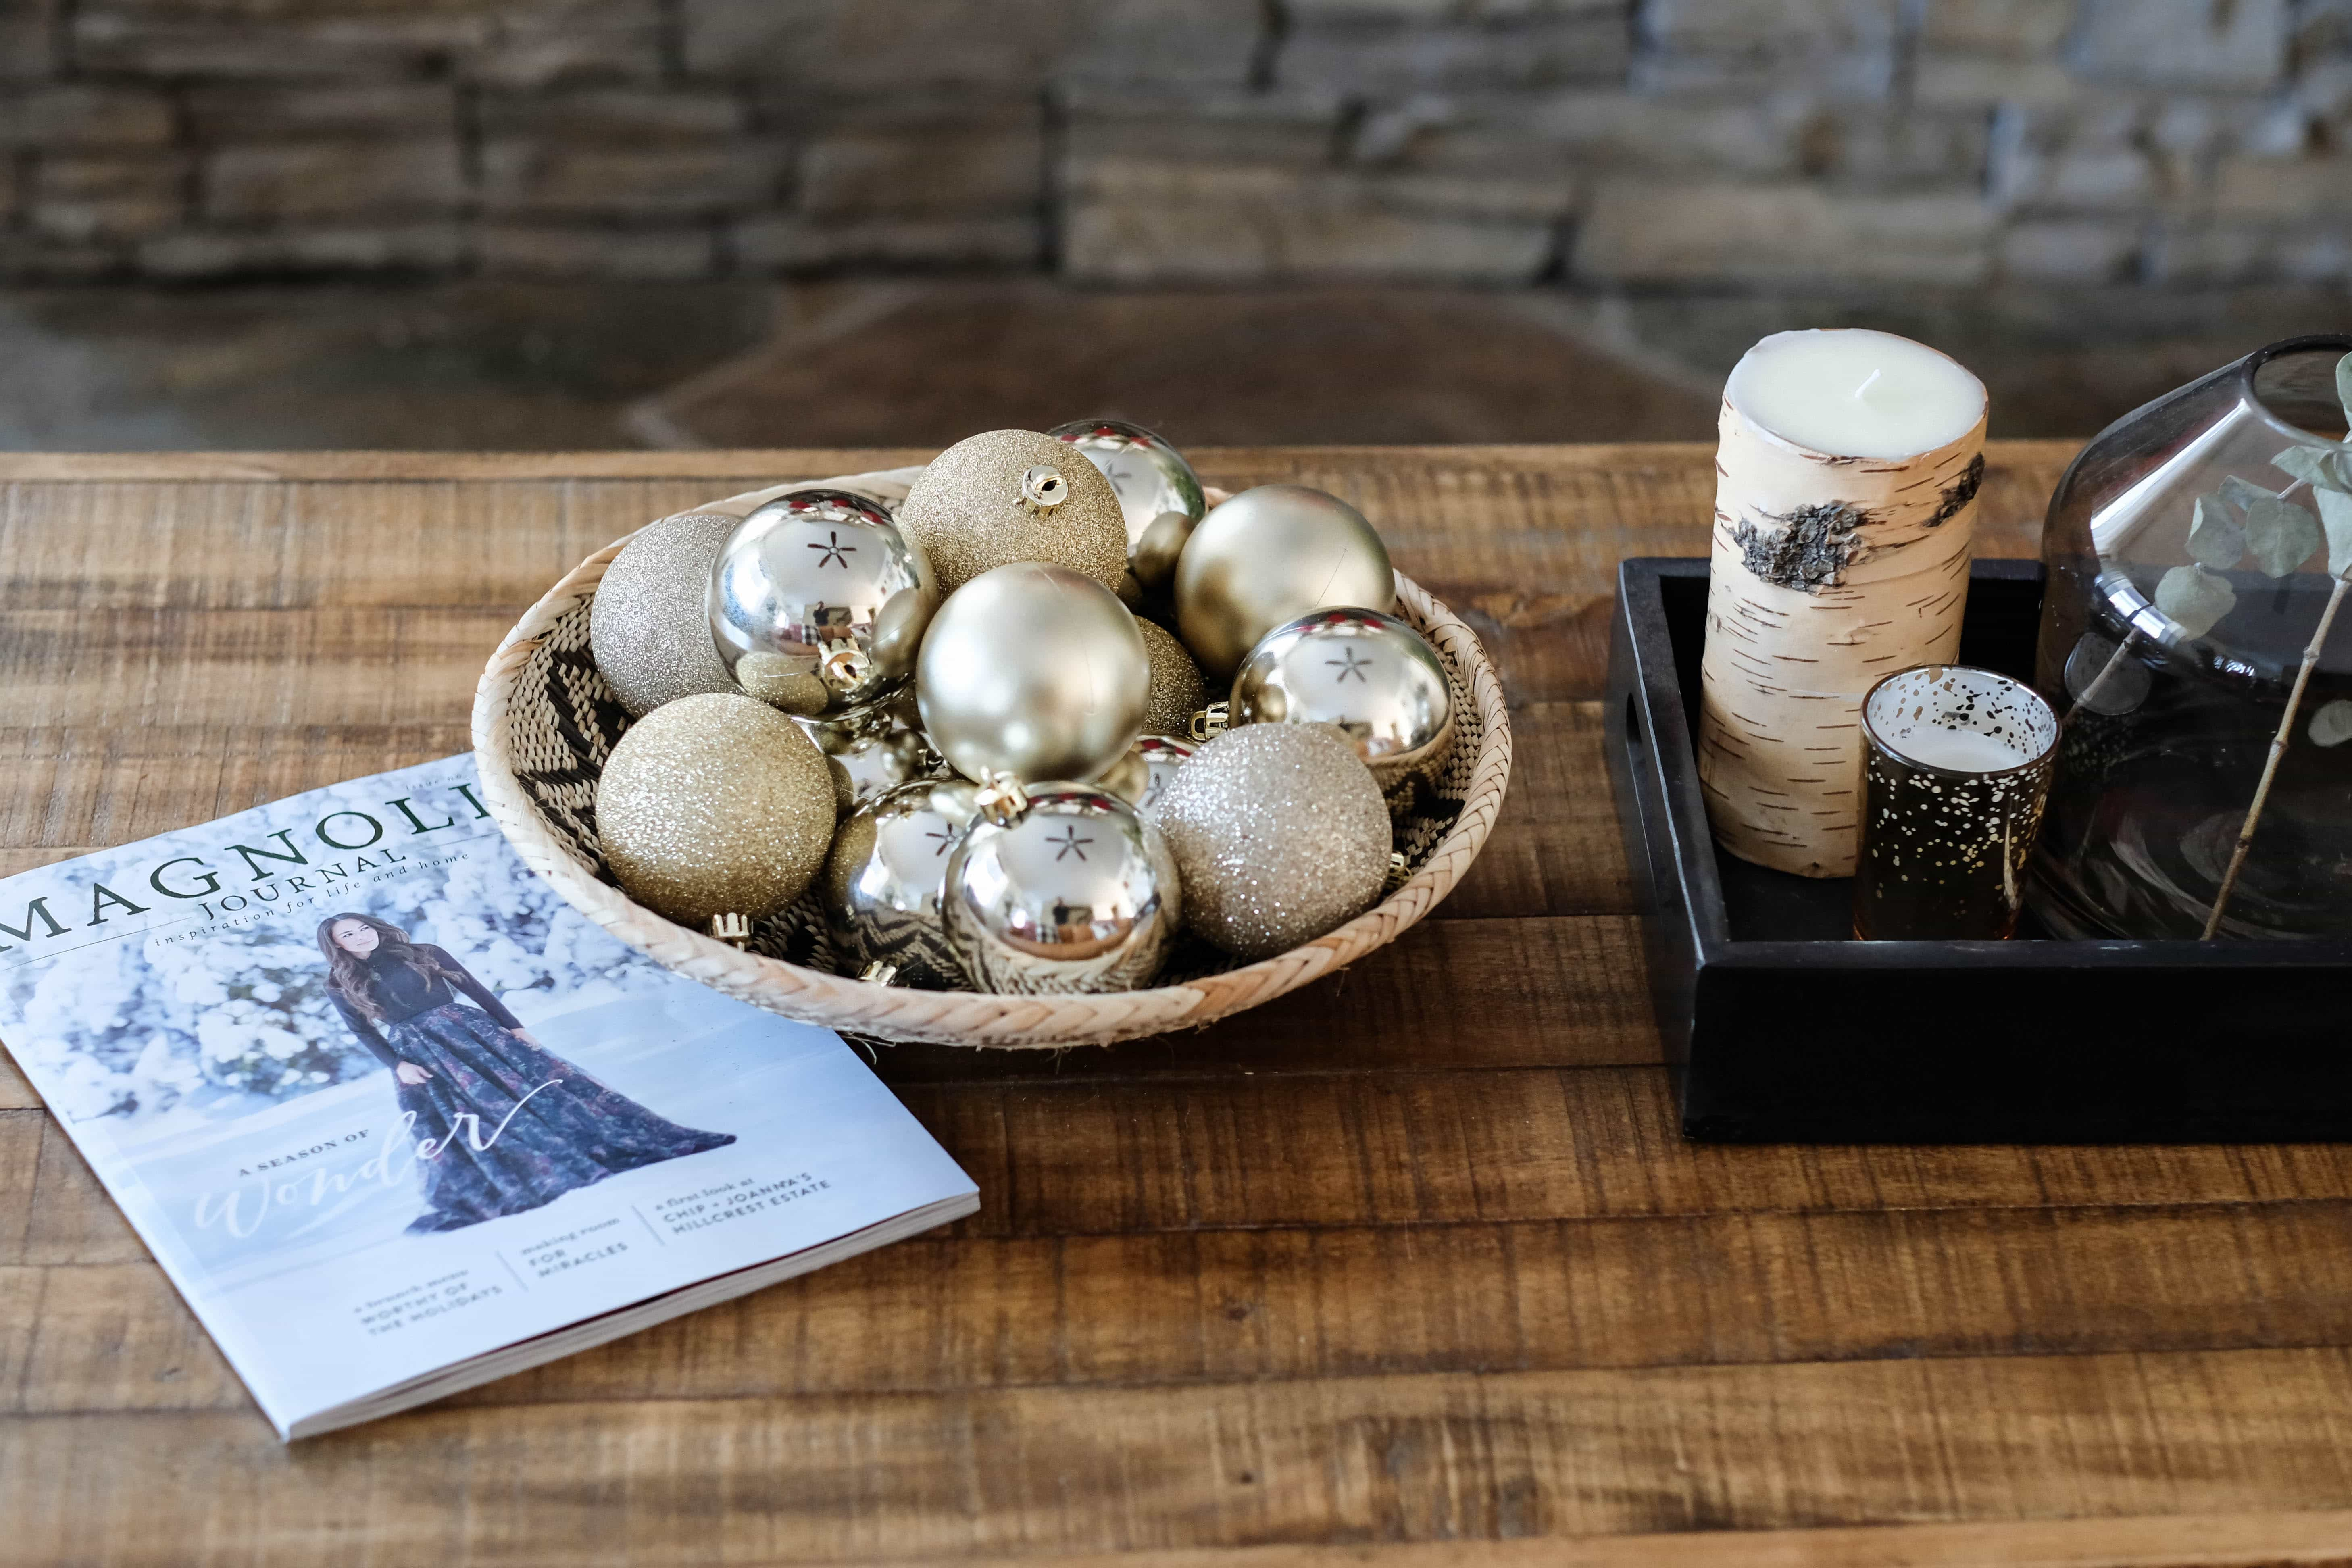 christmas coffee table with bowl full of ornaments and magnolia journal